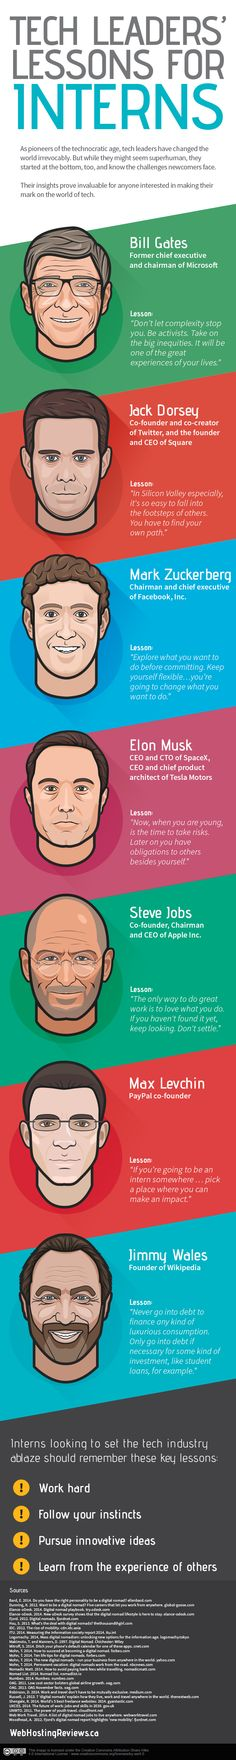 Infographic: Steve Jobs, Other Top Tech Leaders Share Their Advice For Interns - DesignTAXI.com